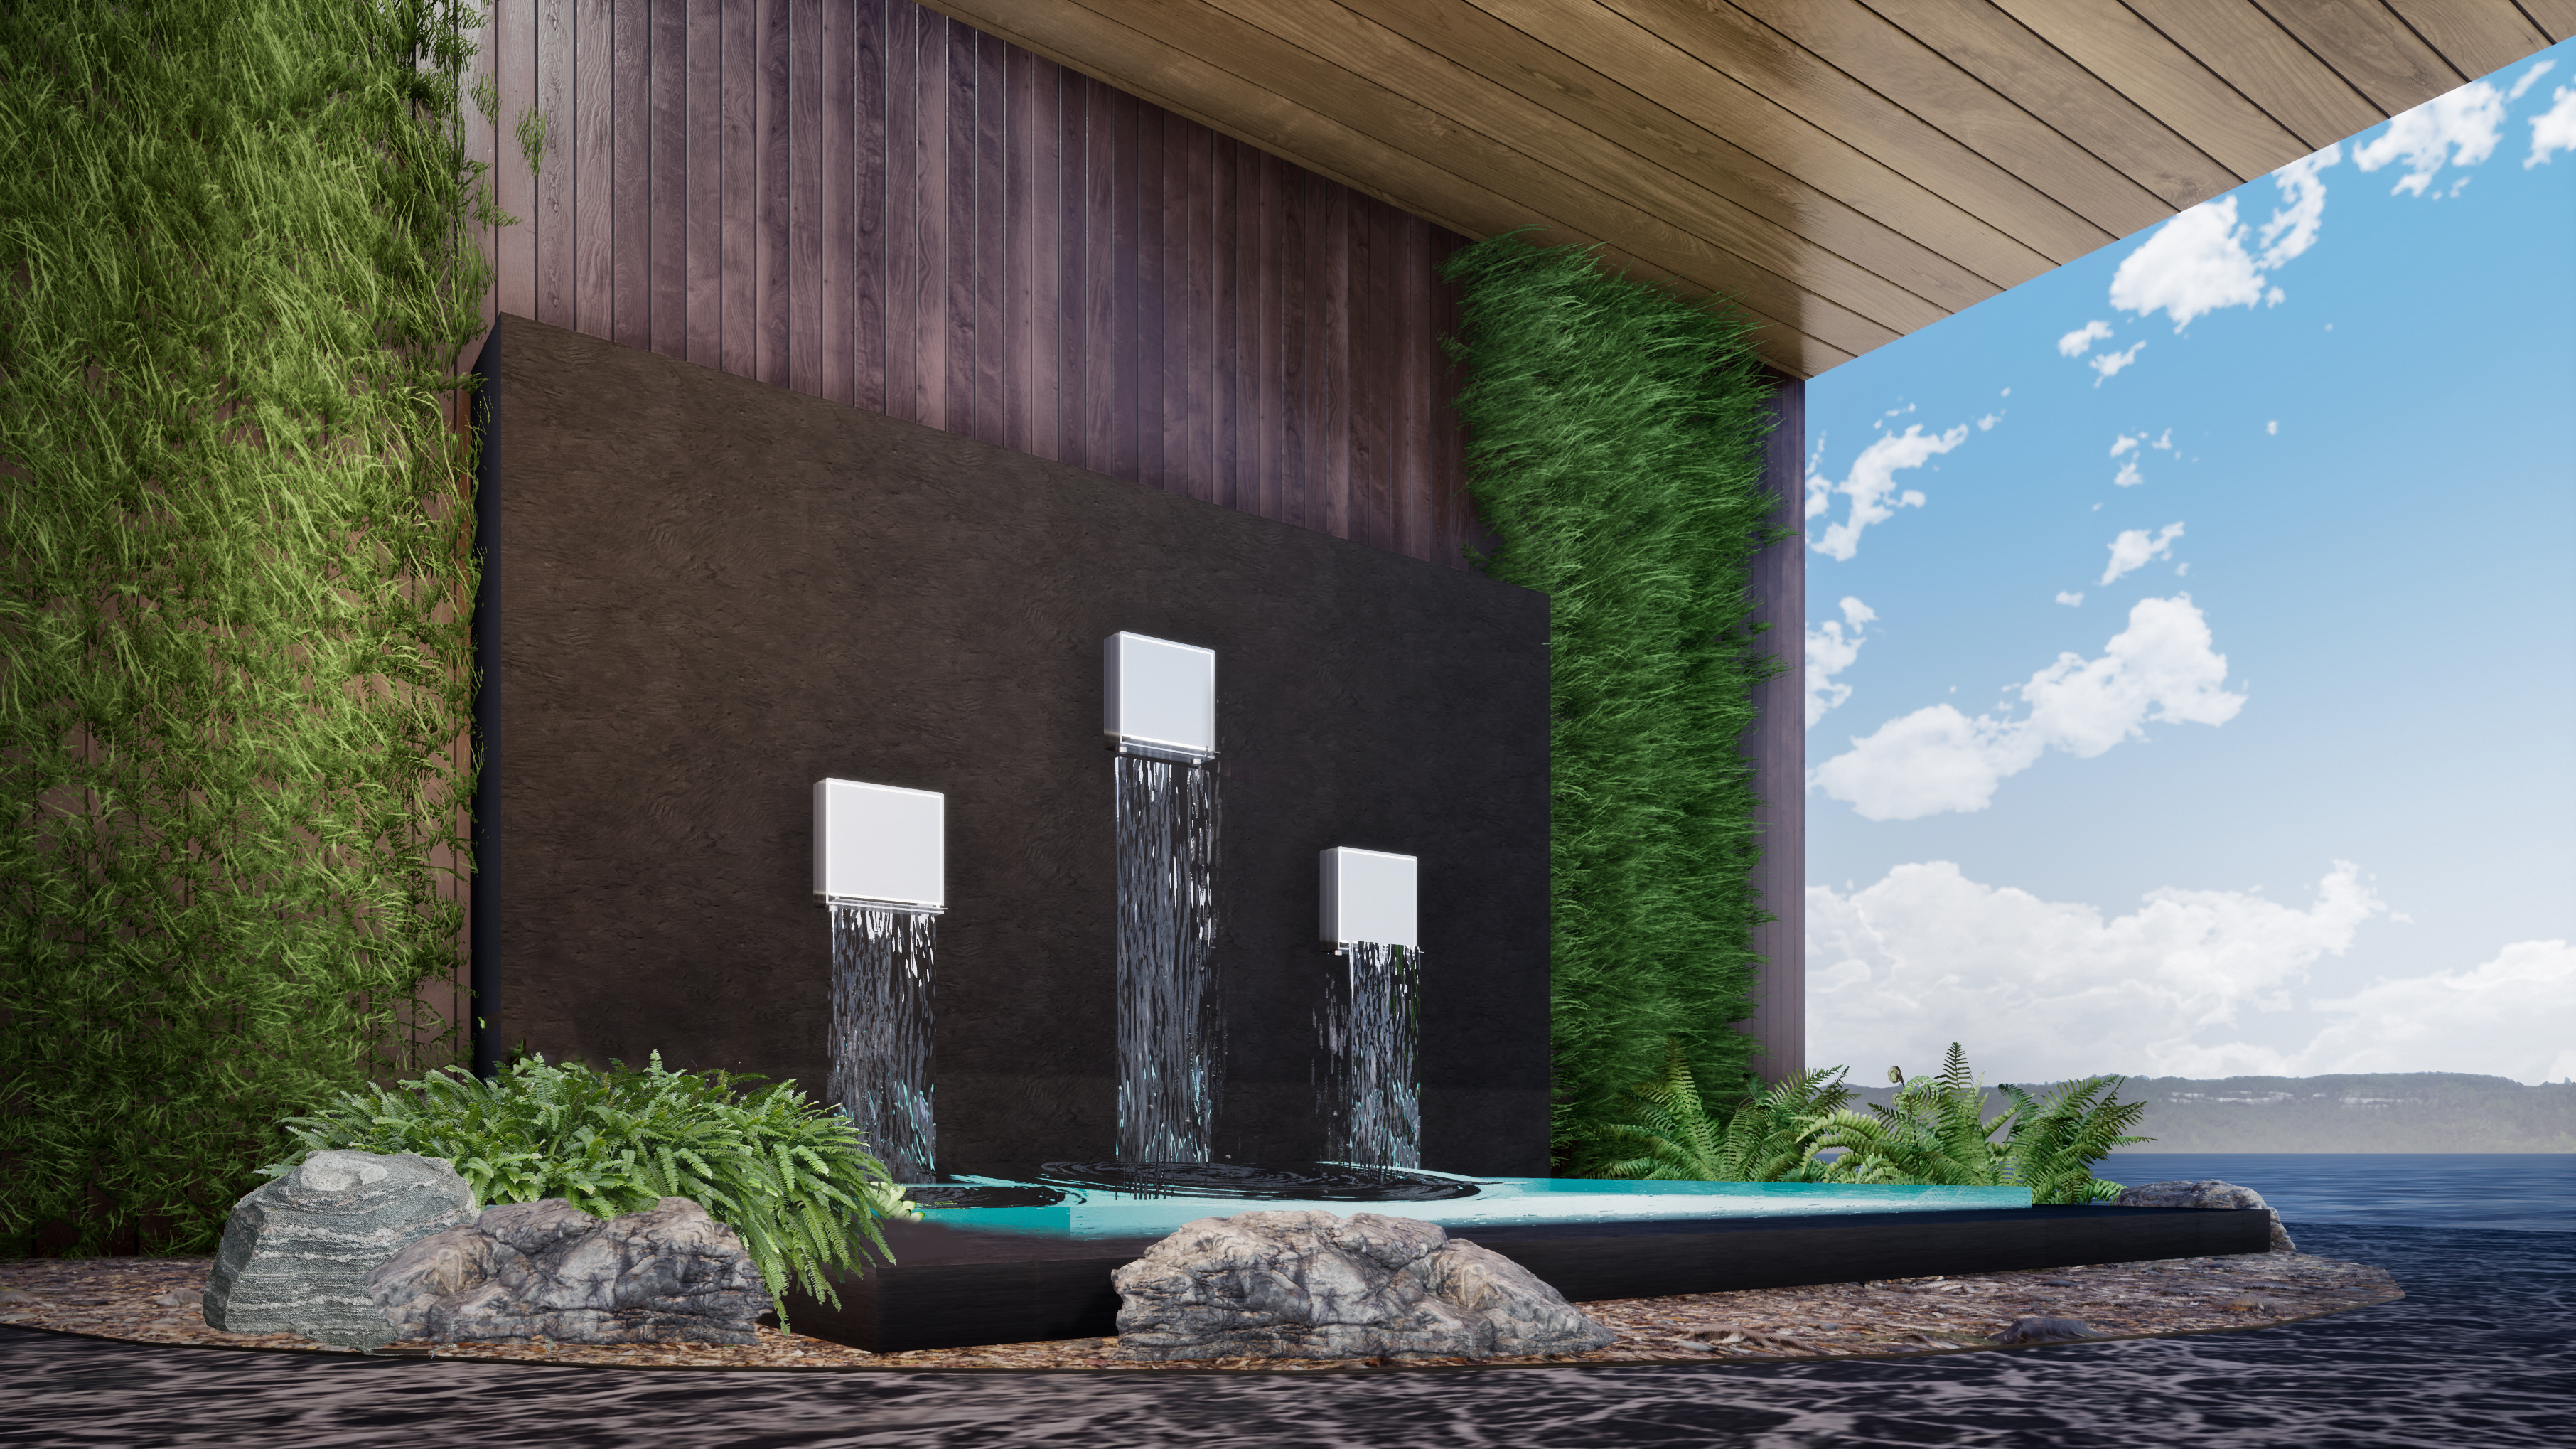 Boxed-Water Curtain